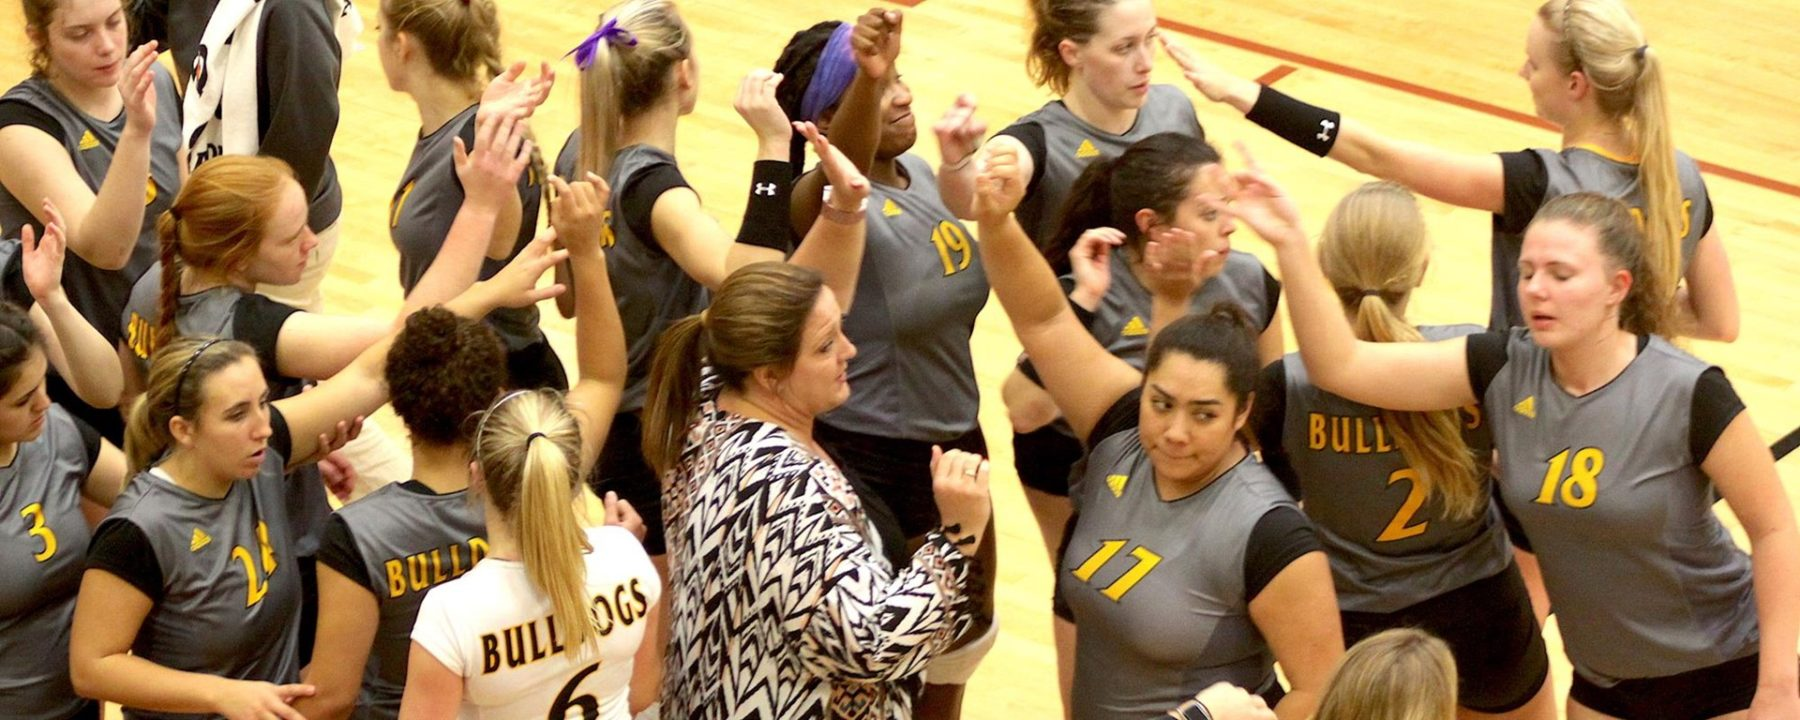 Texas Lutheran Coach Tiffany Davis Resigns